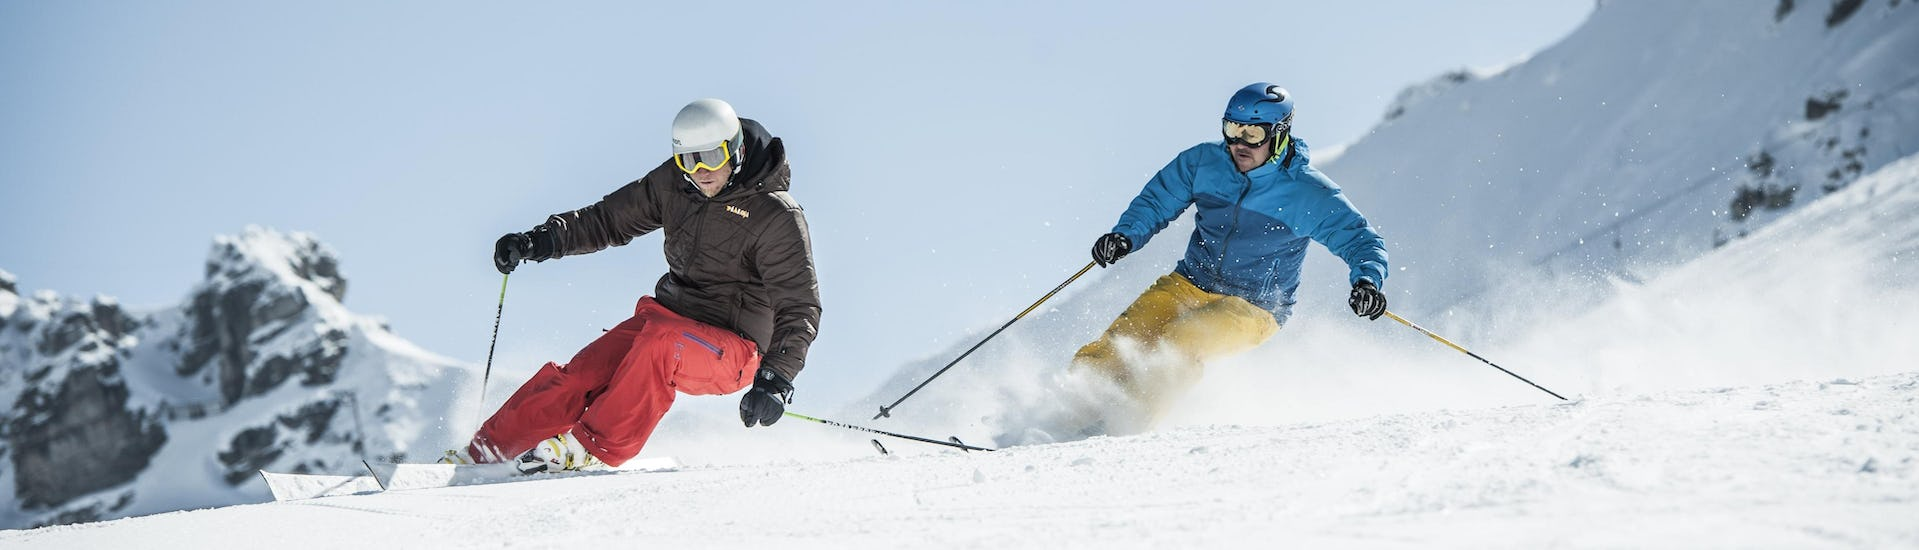 A skier practices the correct skiing technique during one of the private ski lessons in Formigal.